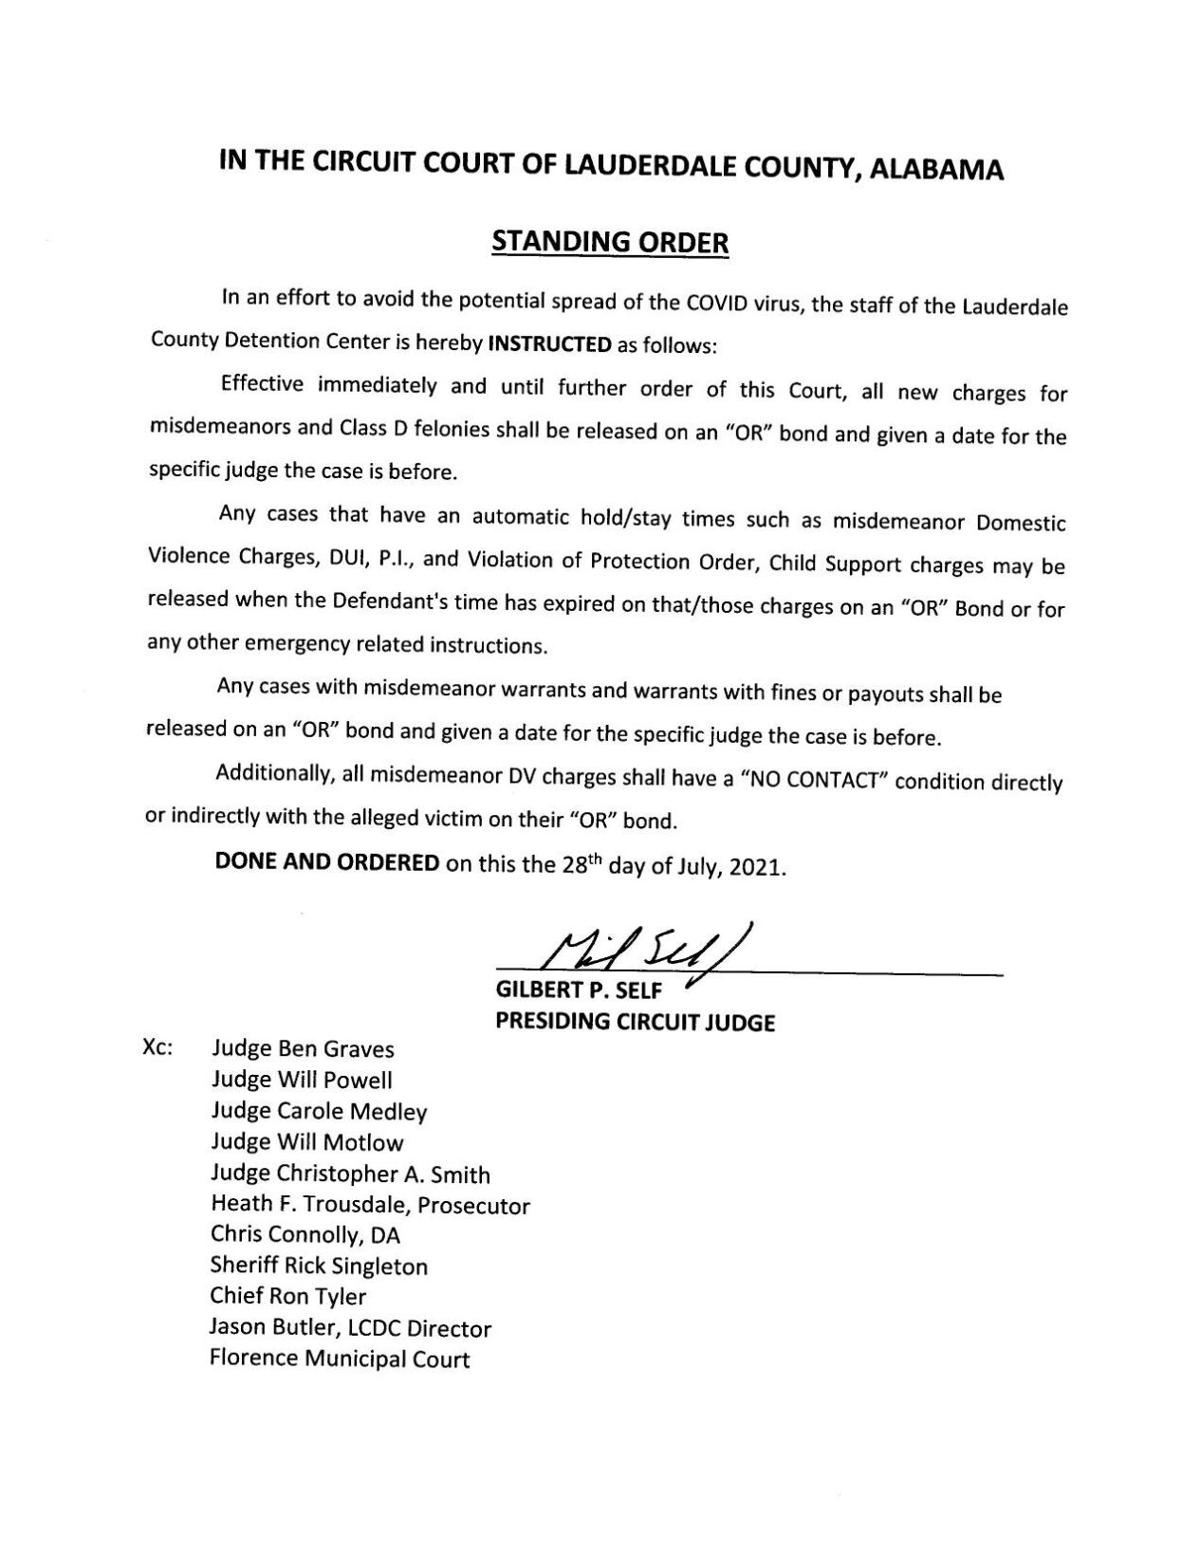 Standing order from Judge Self